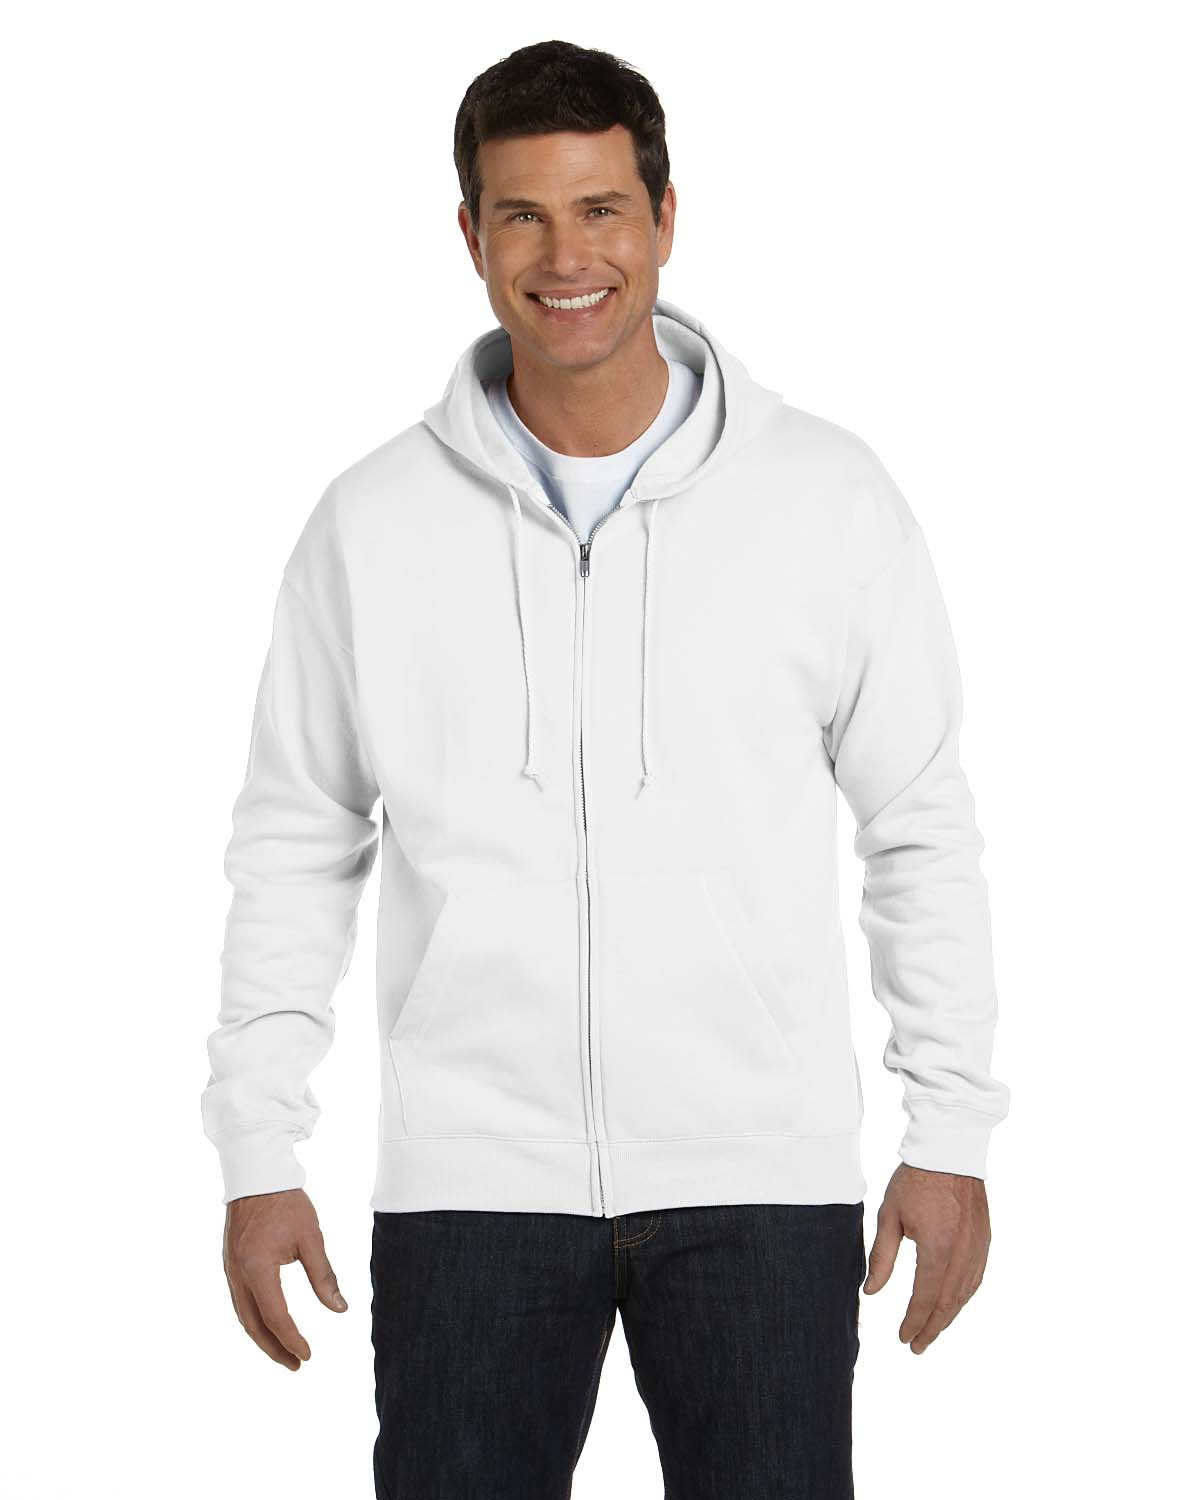 Hanes P180 Men 7.8 oz. ComfortBlend EcoSmart 50/50 Full Zip Hood at GotApparel